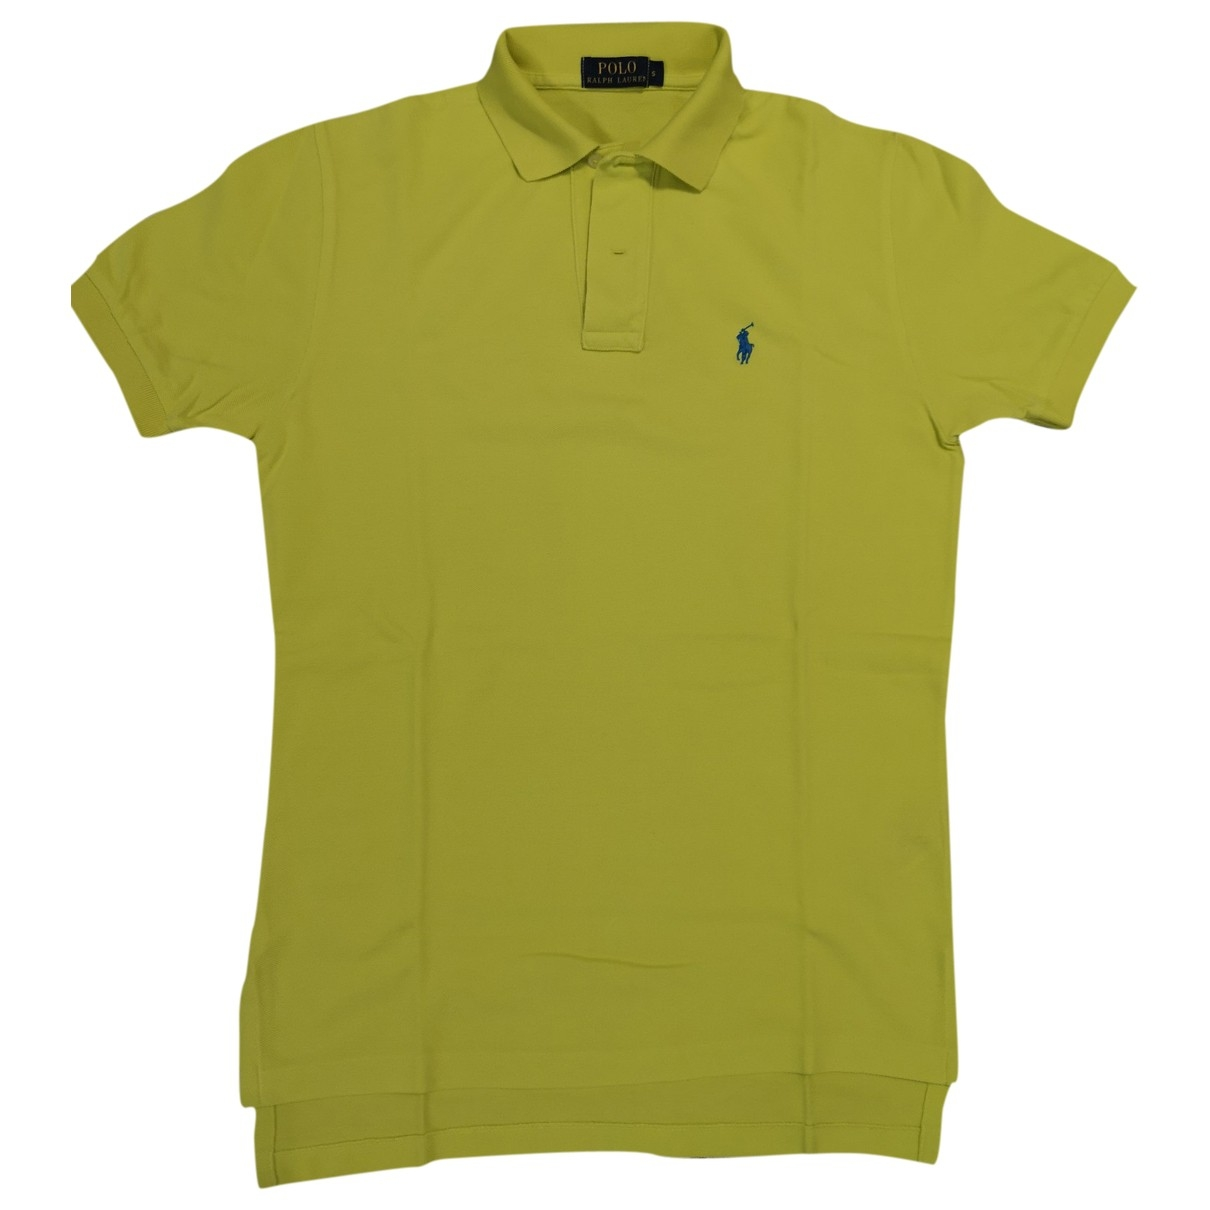 Polo Ralph Lauren Polo cintre manches courtes Poloshirts in  Gelb Baumwolle